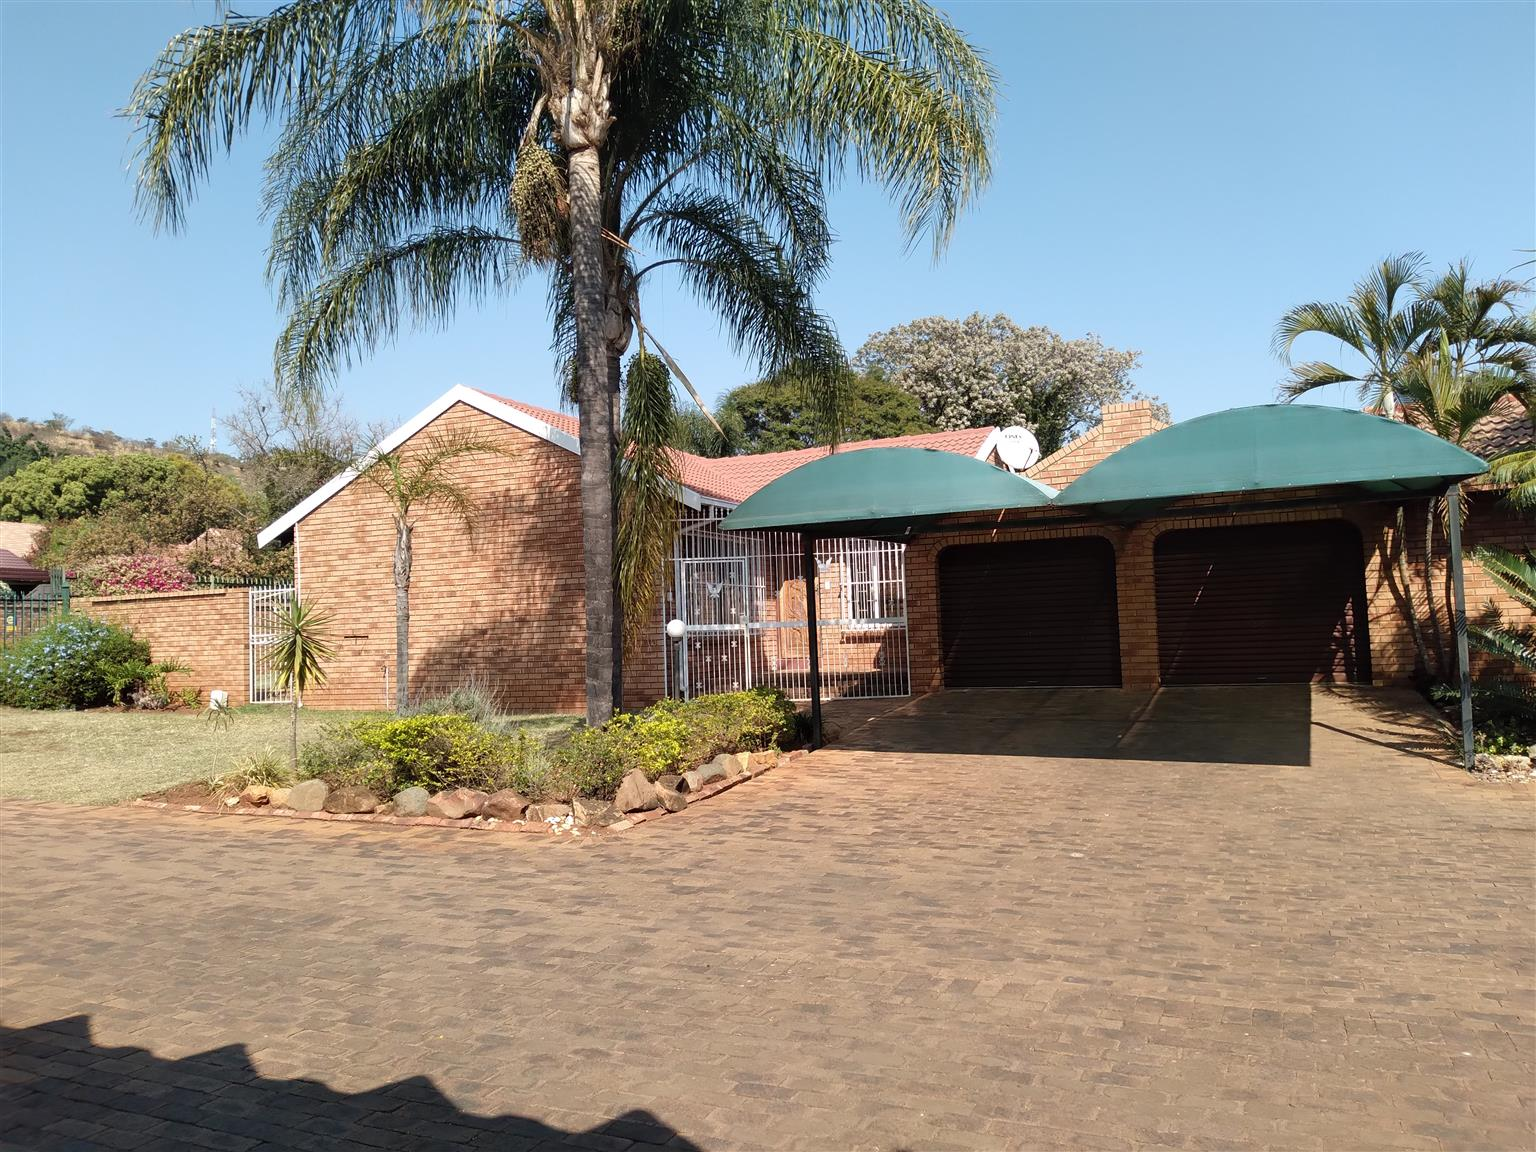 3 Bedroom House in Montana park to rent